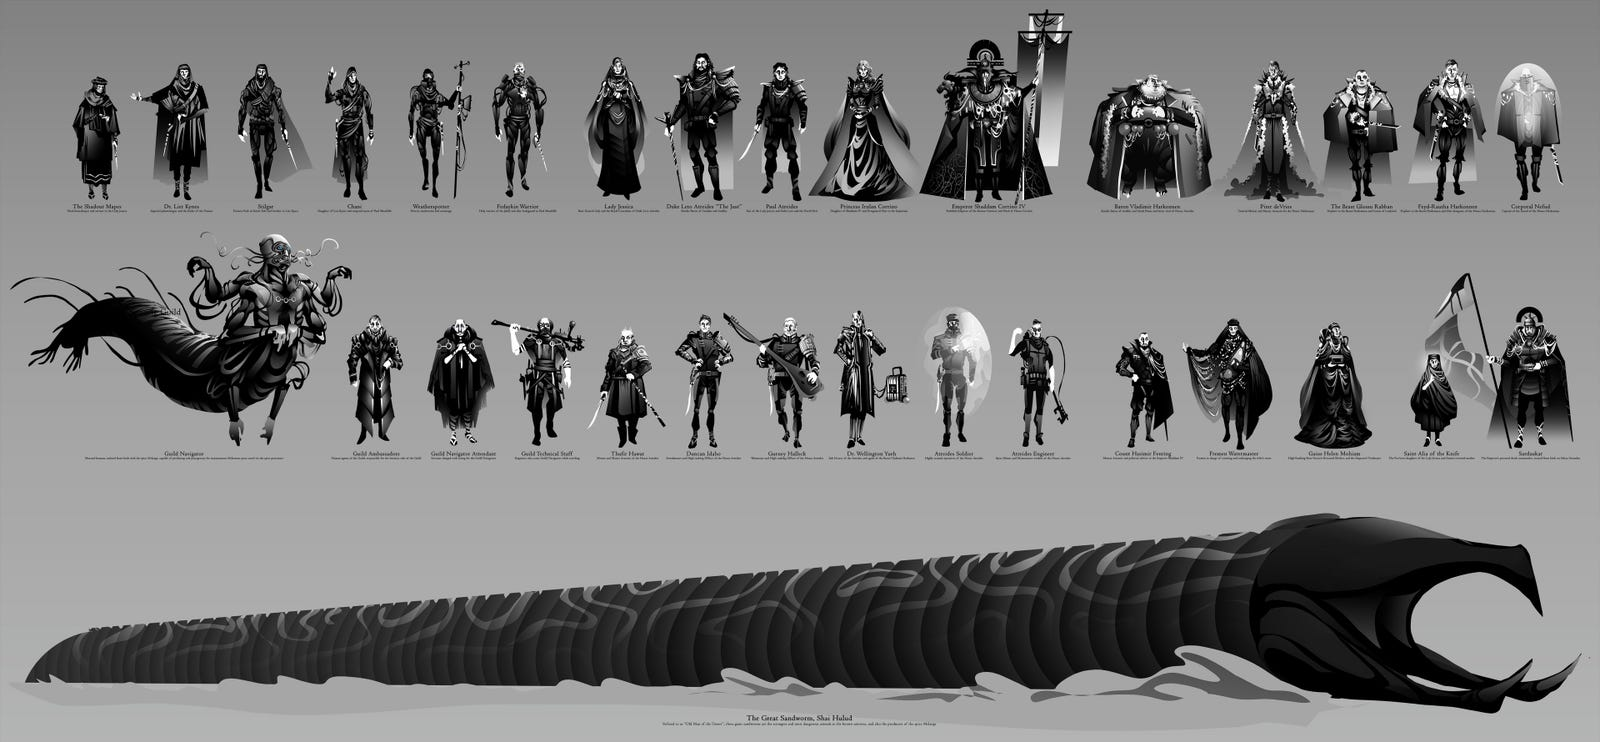 A look at all the characters in Marc Henry's illustration collection.